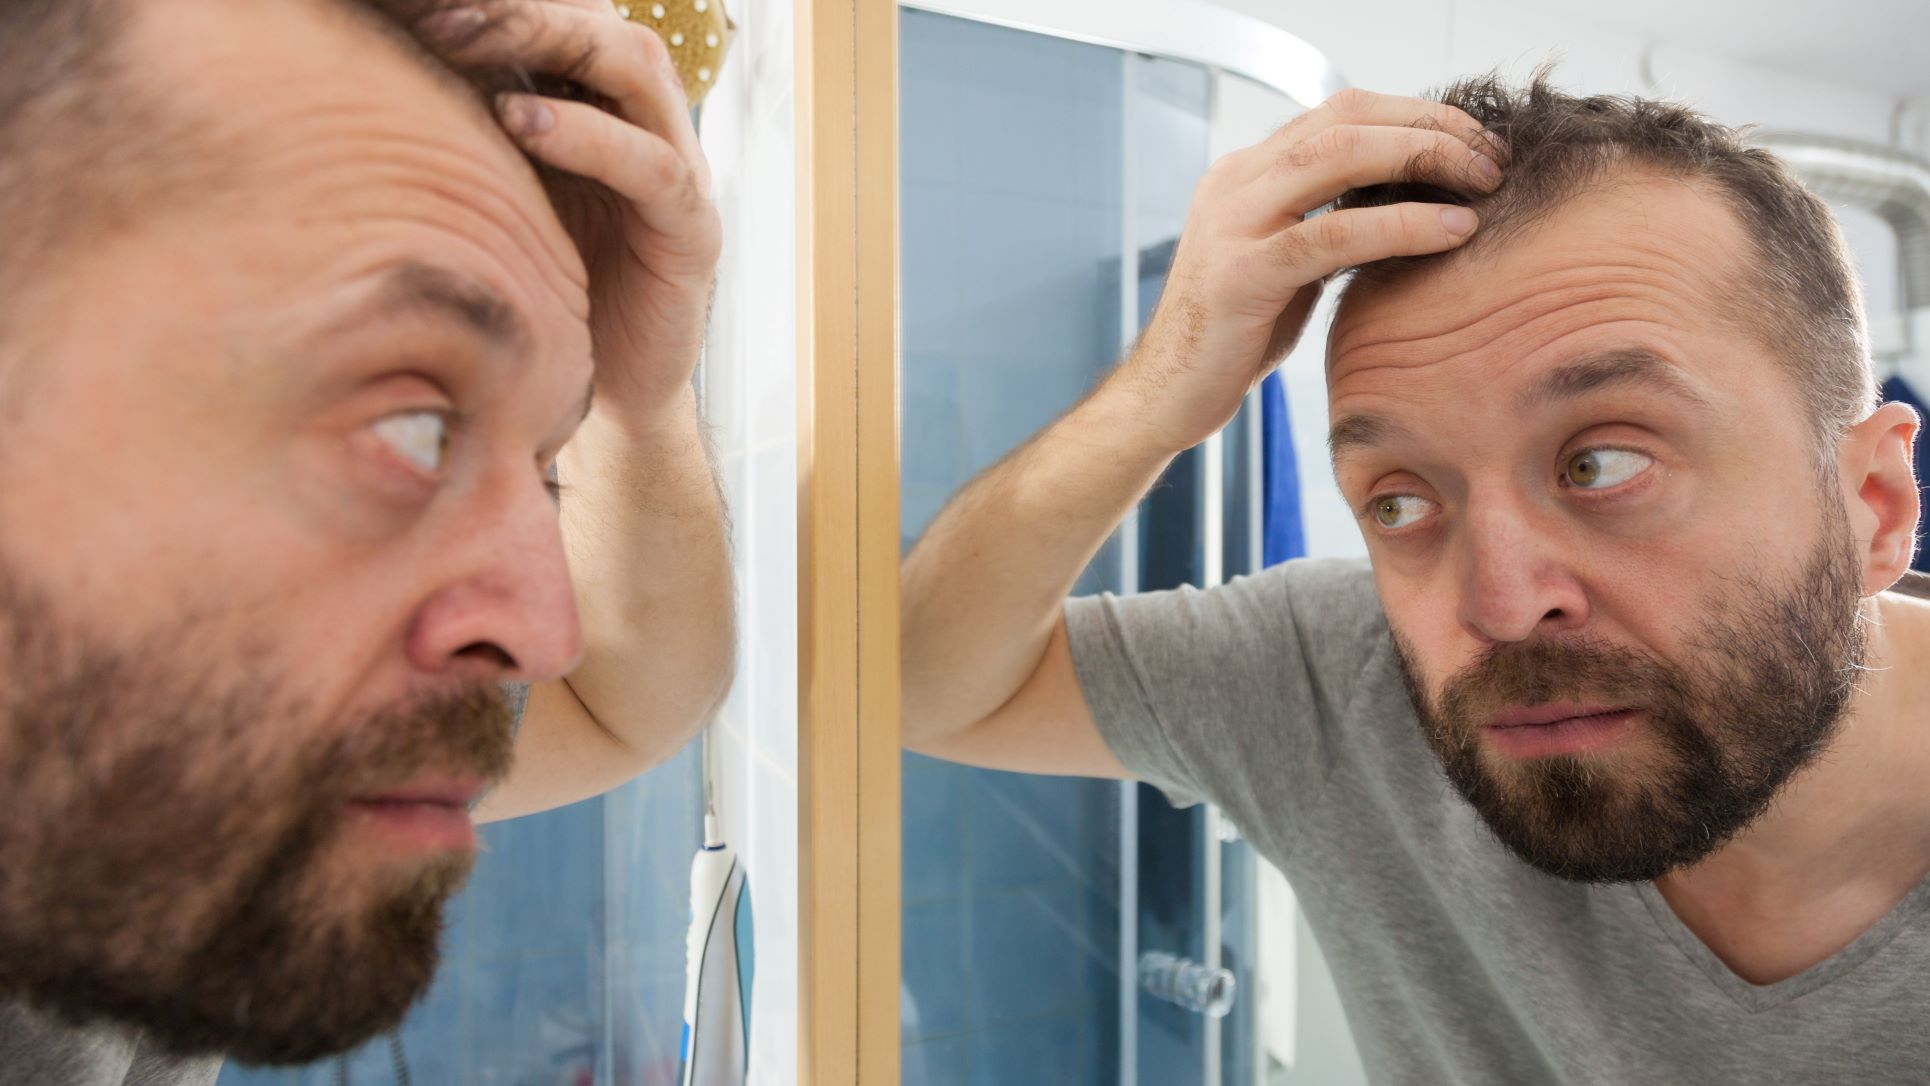 mature hairline m hairline guy looking at mirror